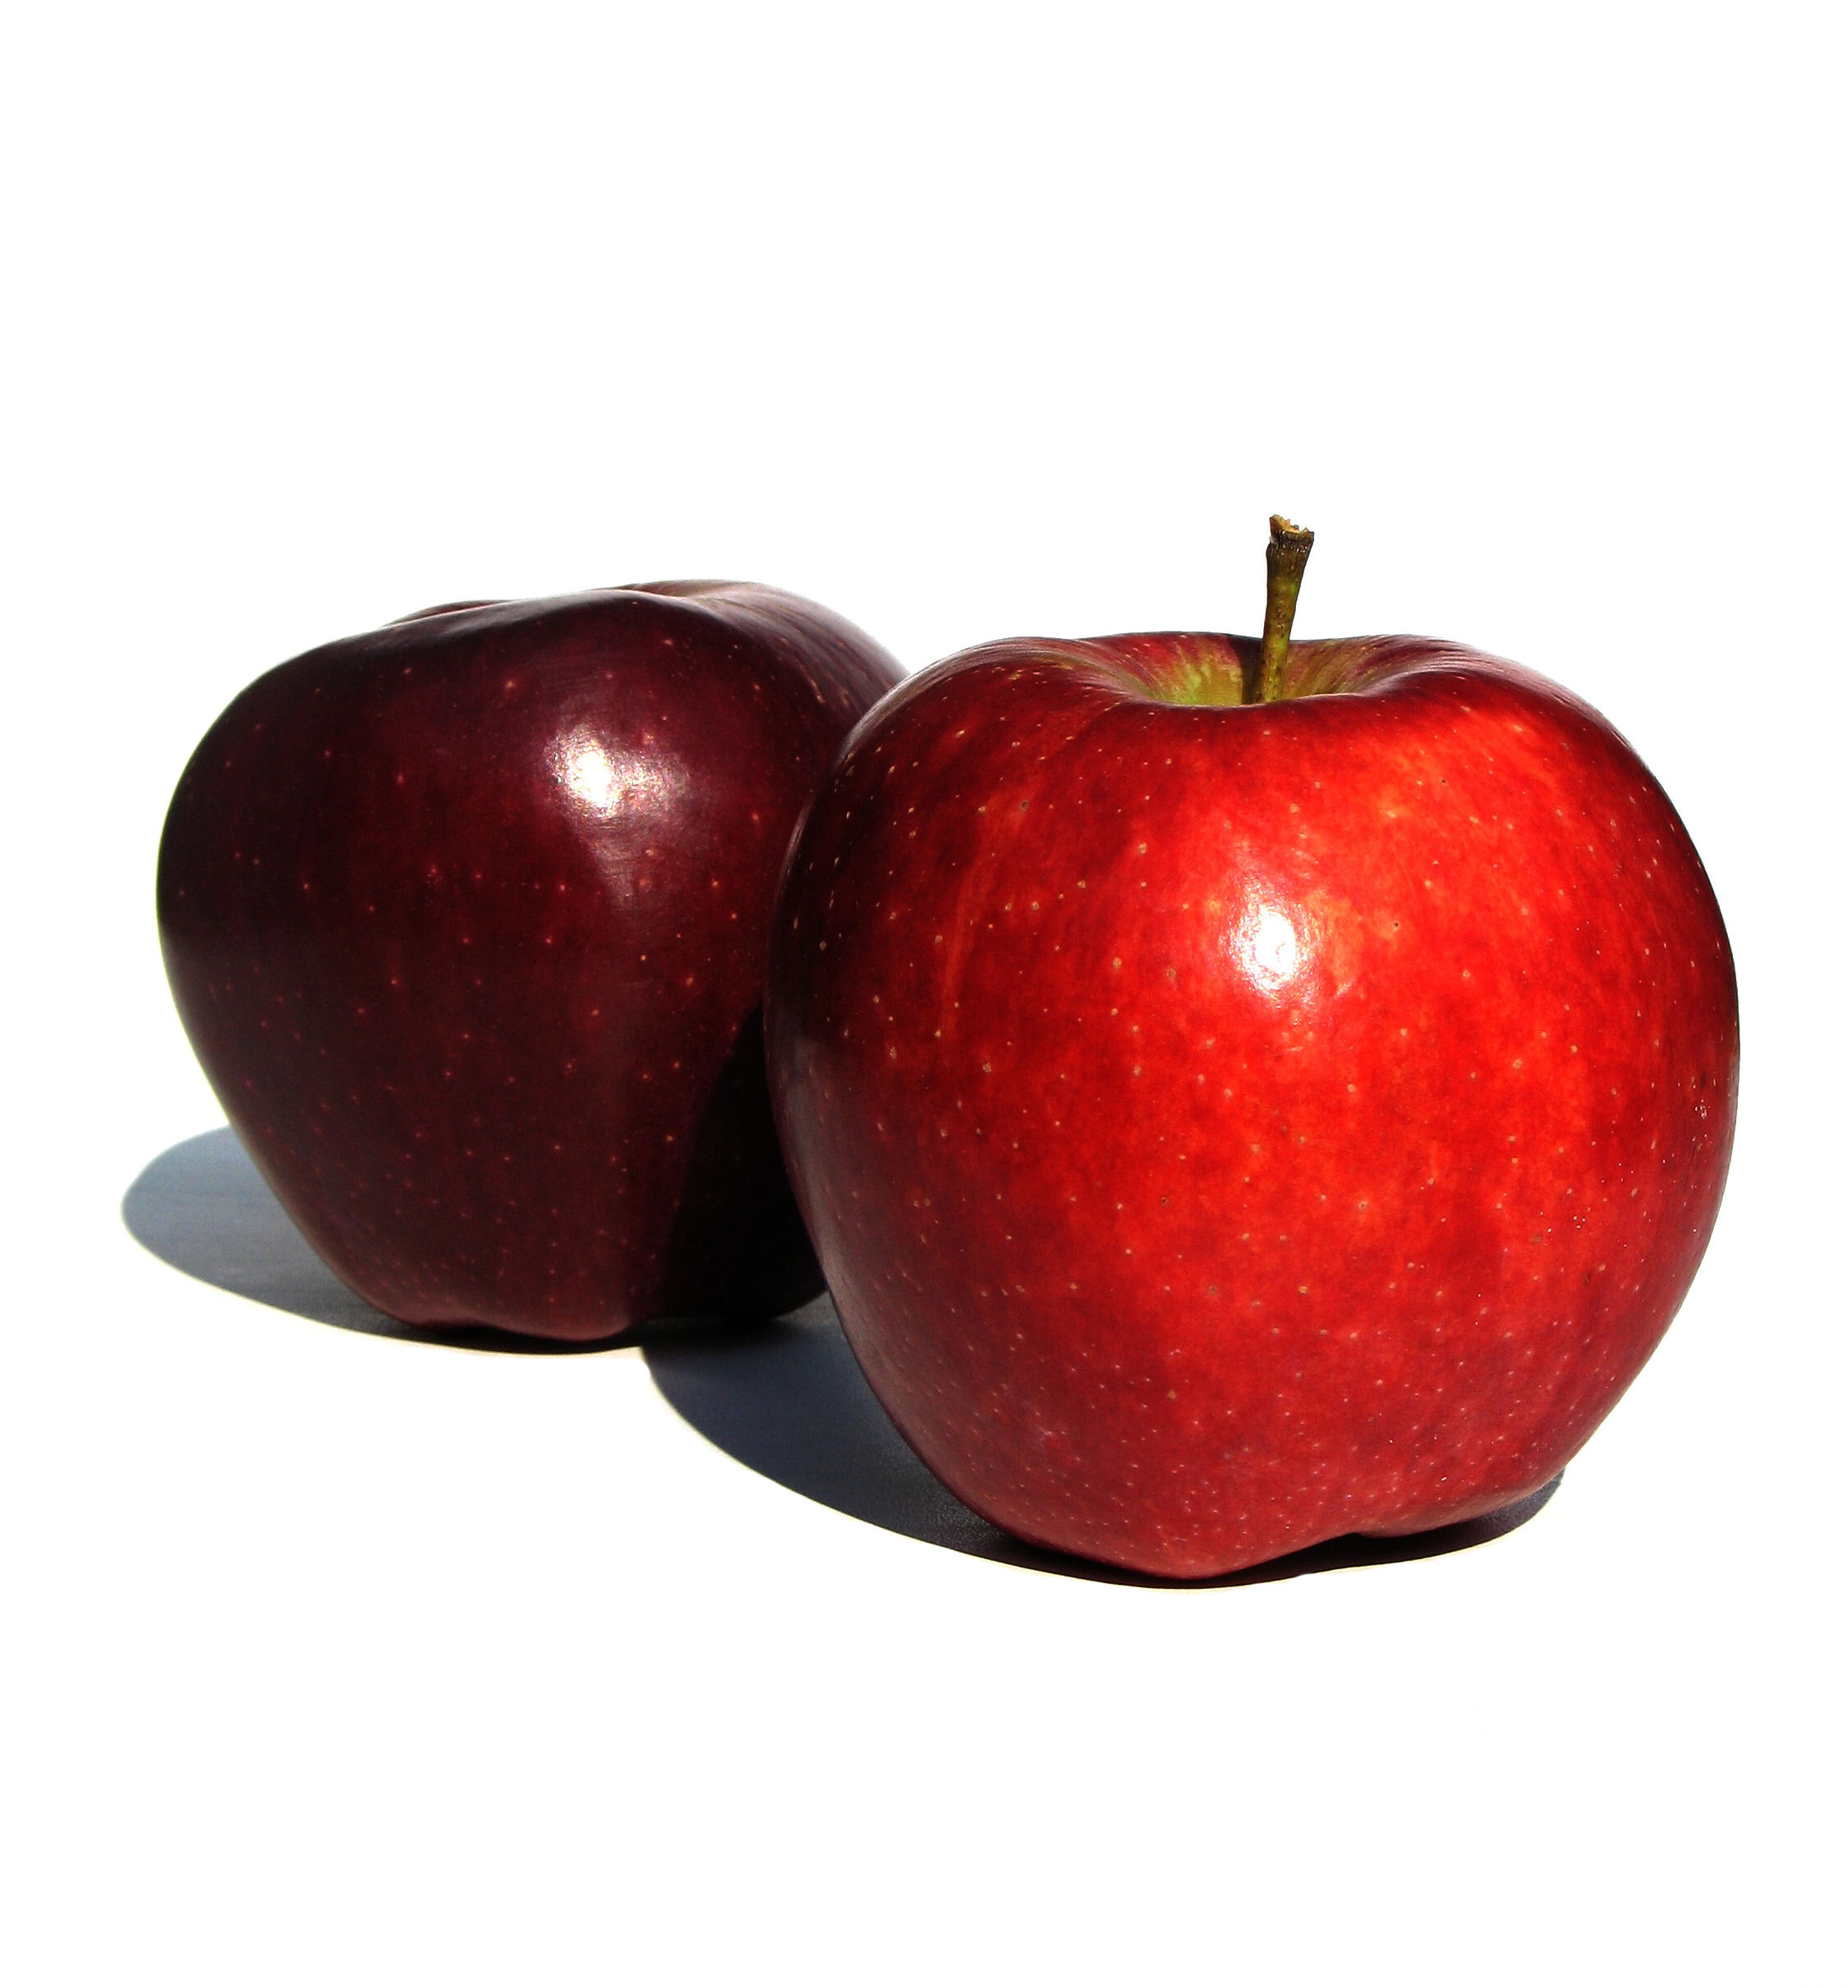 Top 5 reasons to eat apples enlightened eater for What to make with apples for dessert